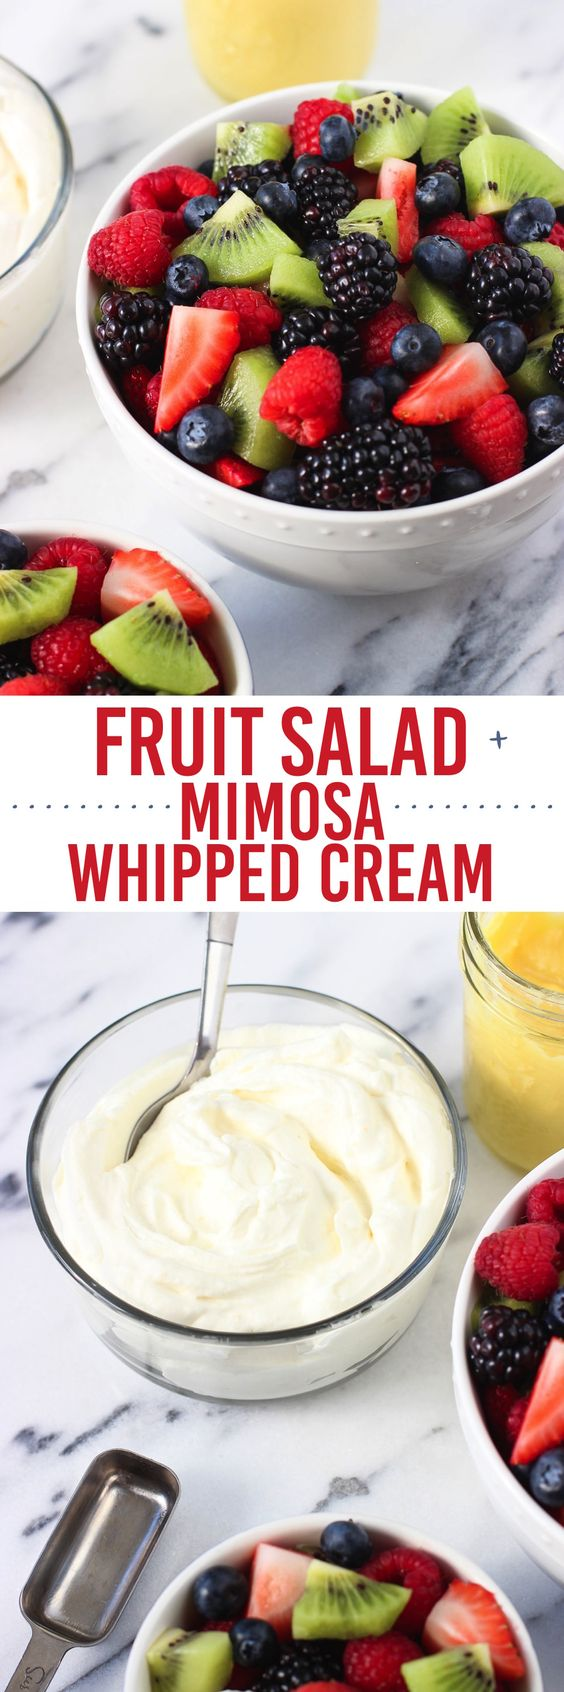 Fruit Salad with Mimosa Whipped Cream | Recipe | Pinterest ...